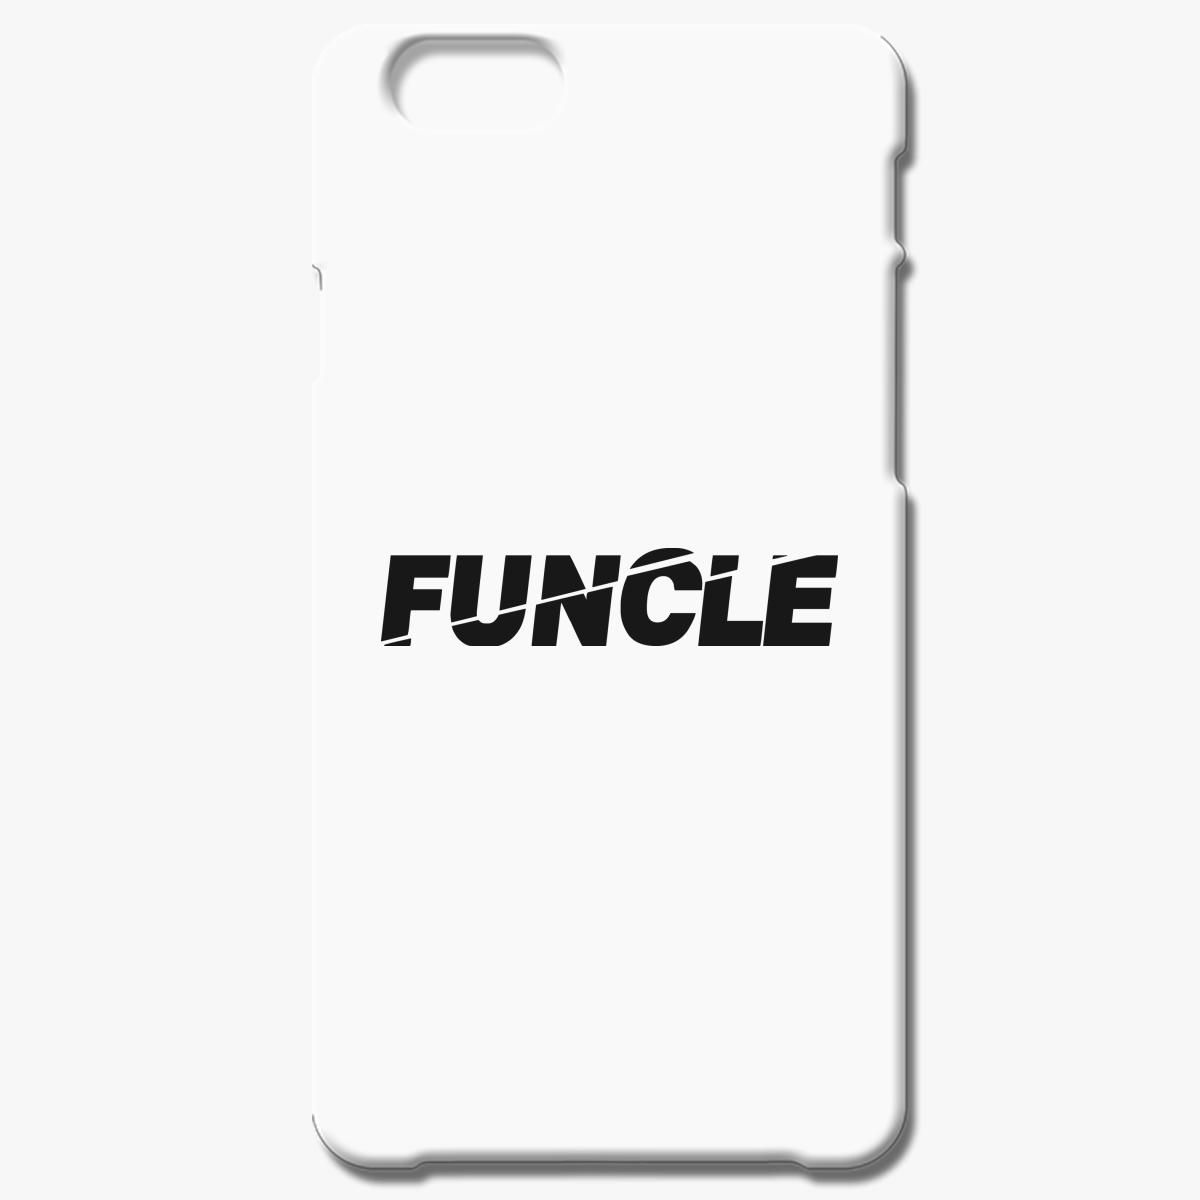 Funcle Iphone 6 6s Case